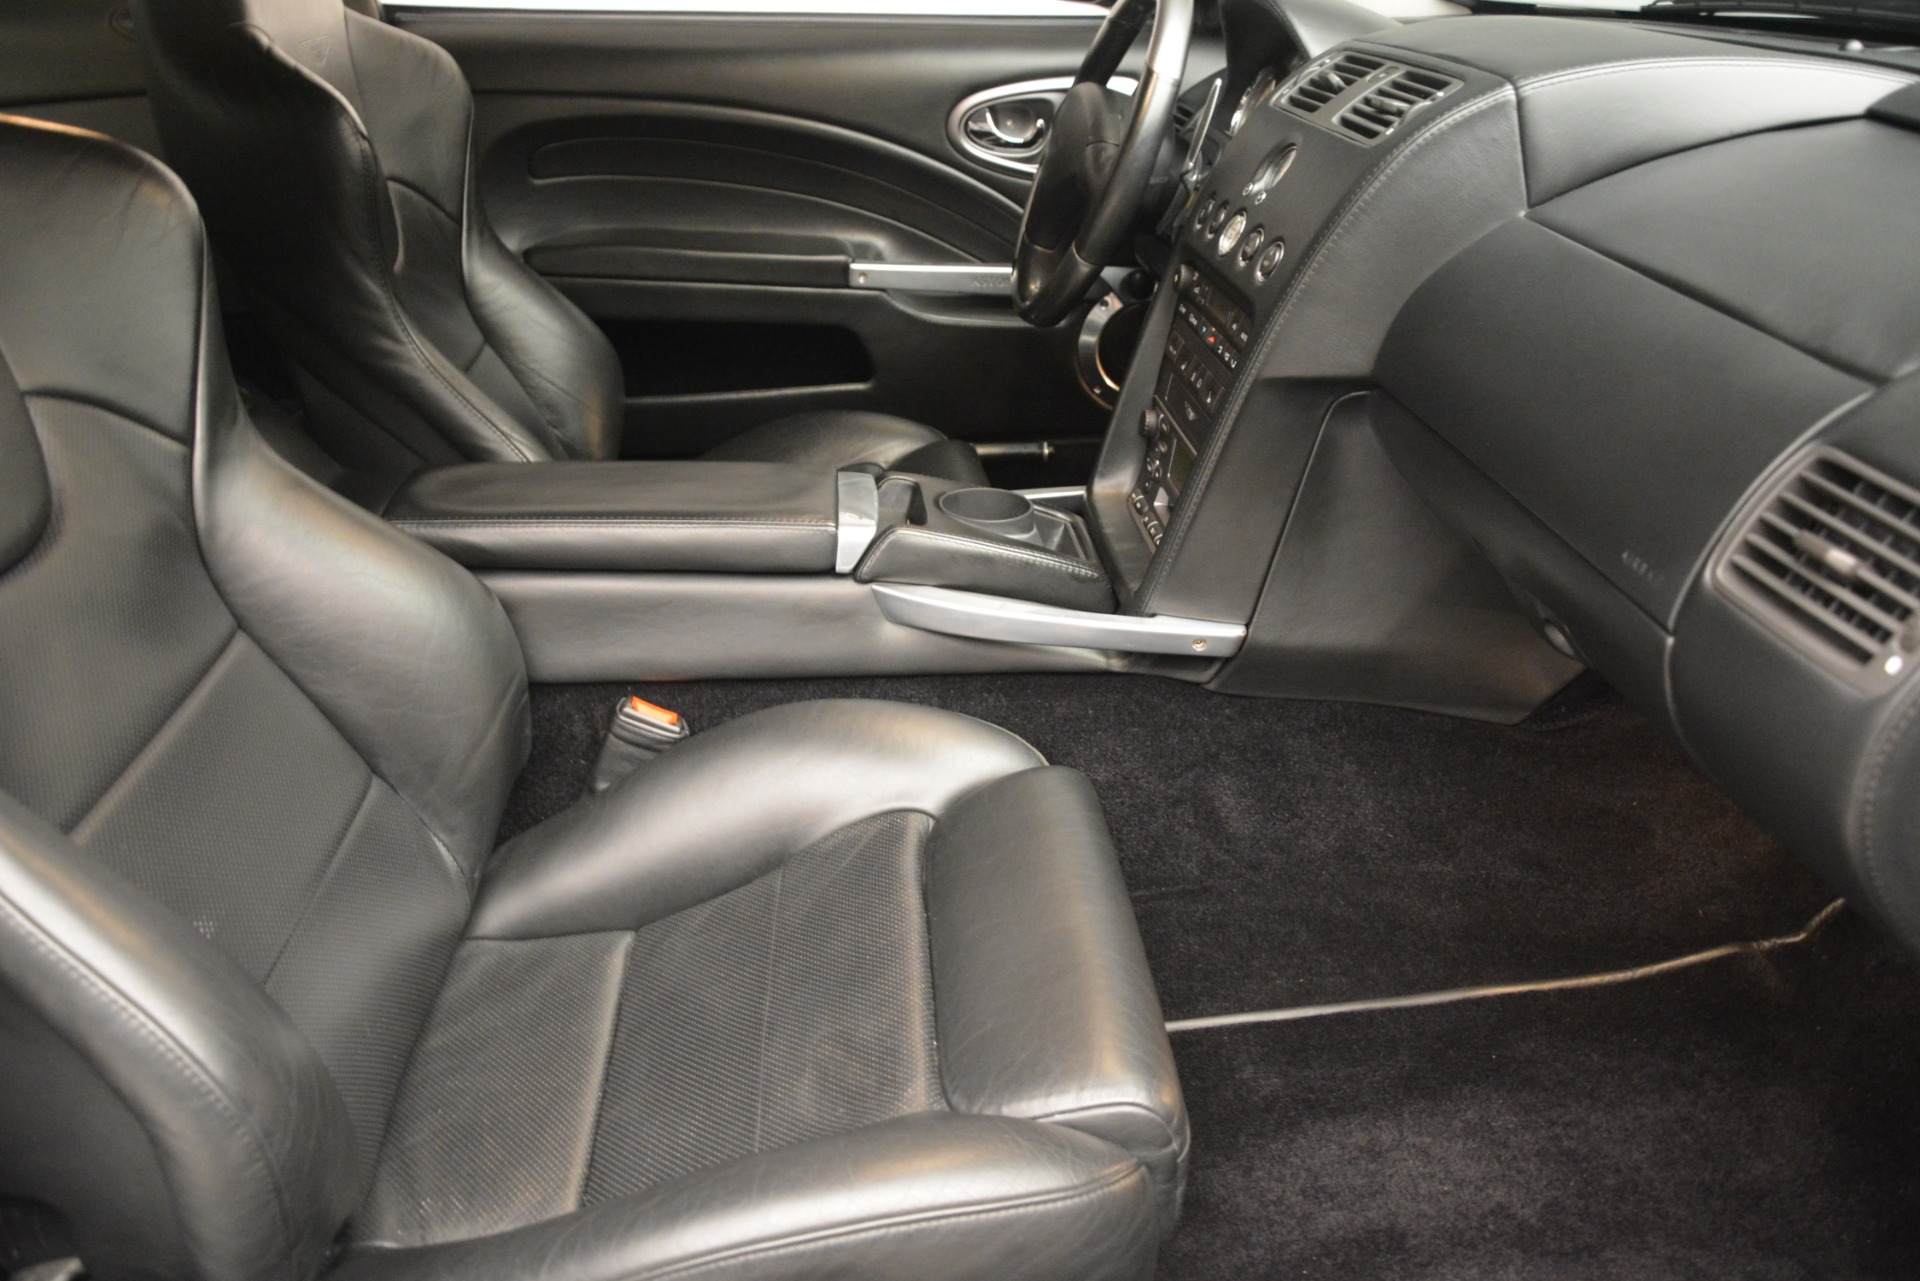 Used 2005 Aston Martin V12 Vanquish S Coupe For Sale In Greenwich, CT 3218_p21